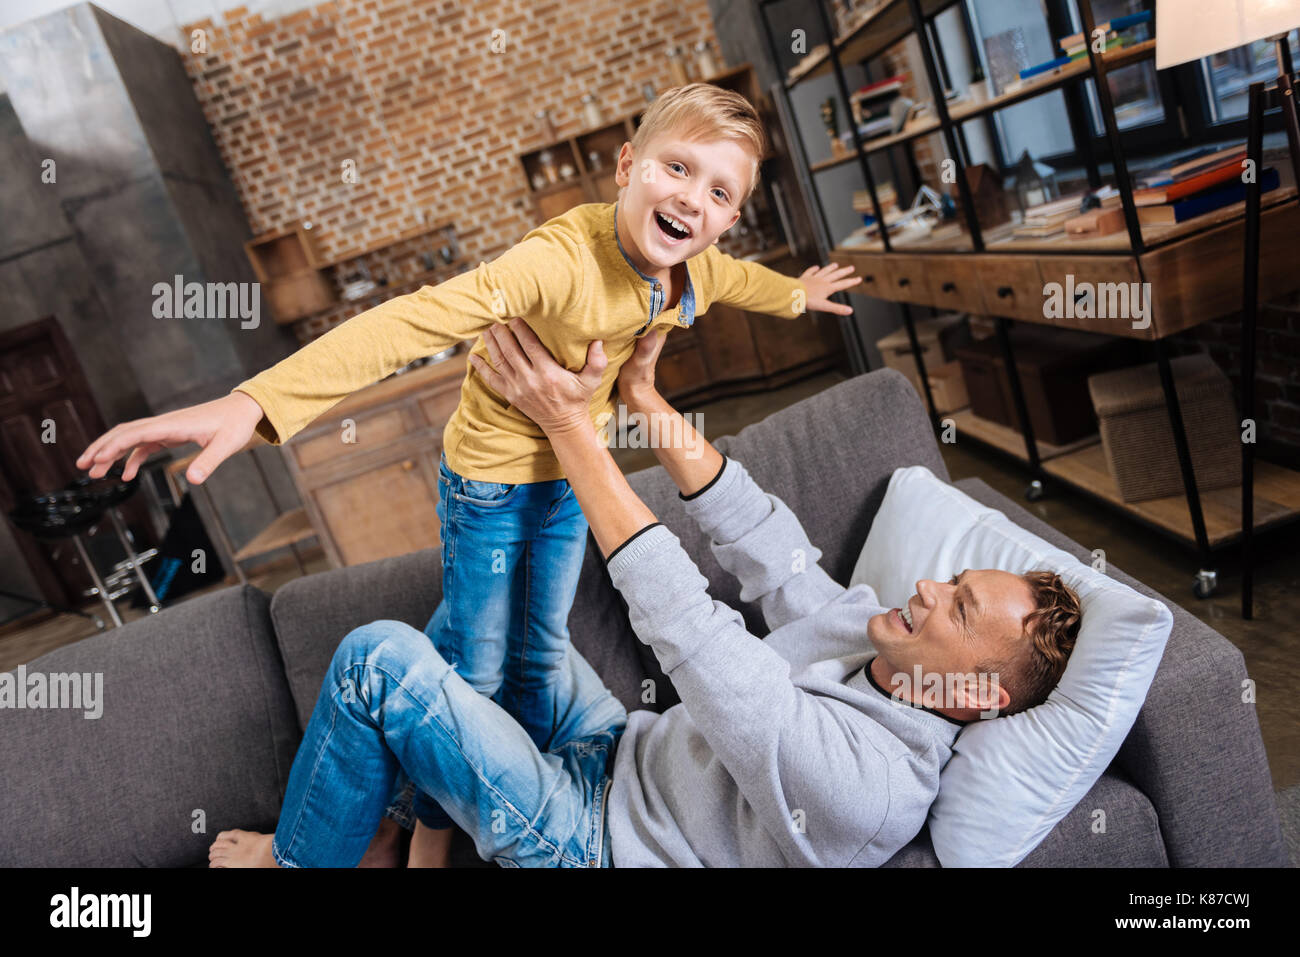 Joyful boy playing with his father on sofa - Stock Image